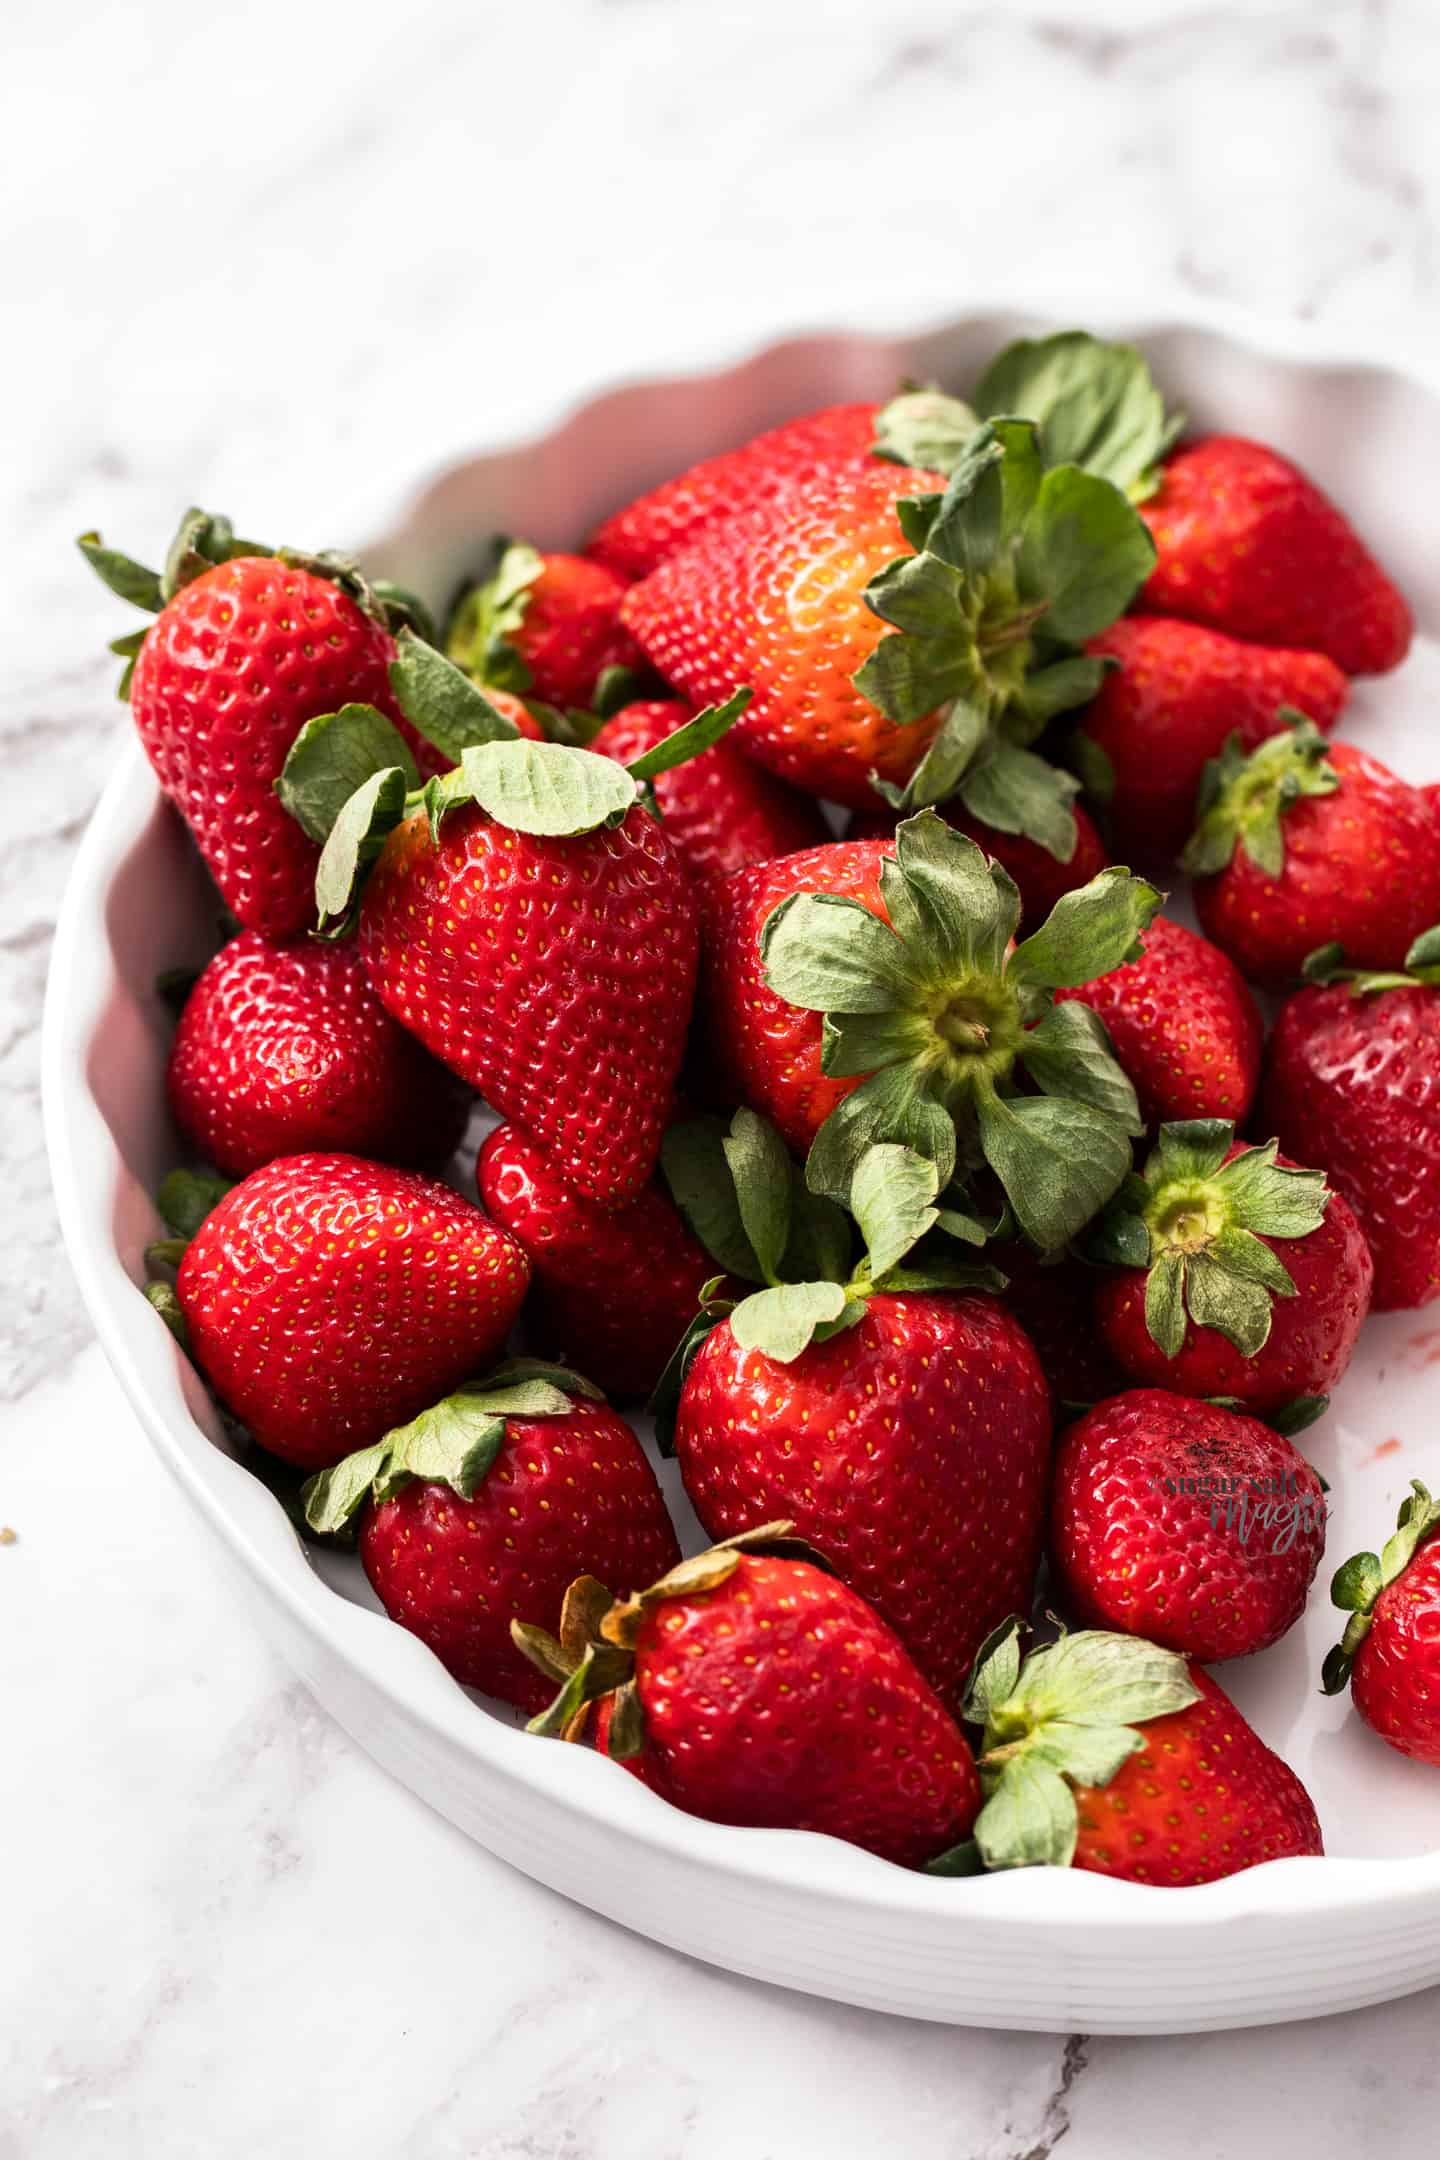 A white pie dish filled with fresh strawberries.